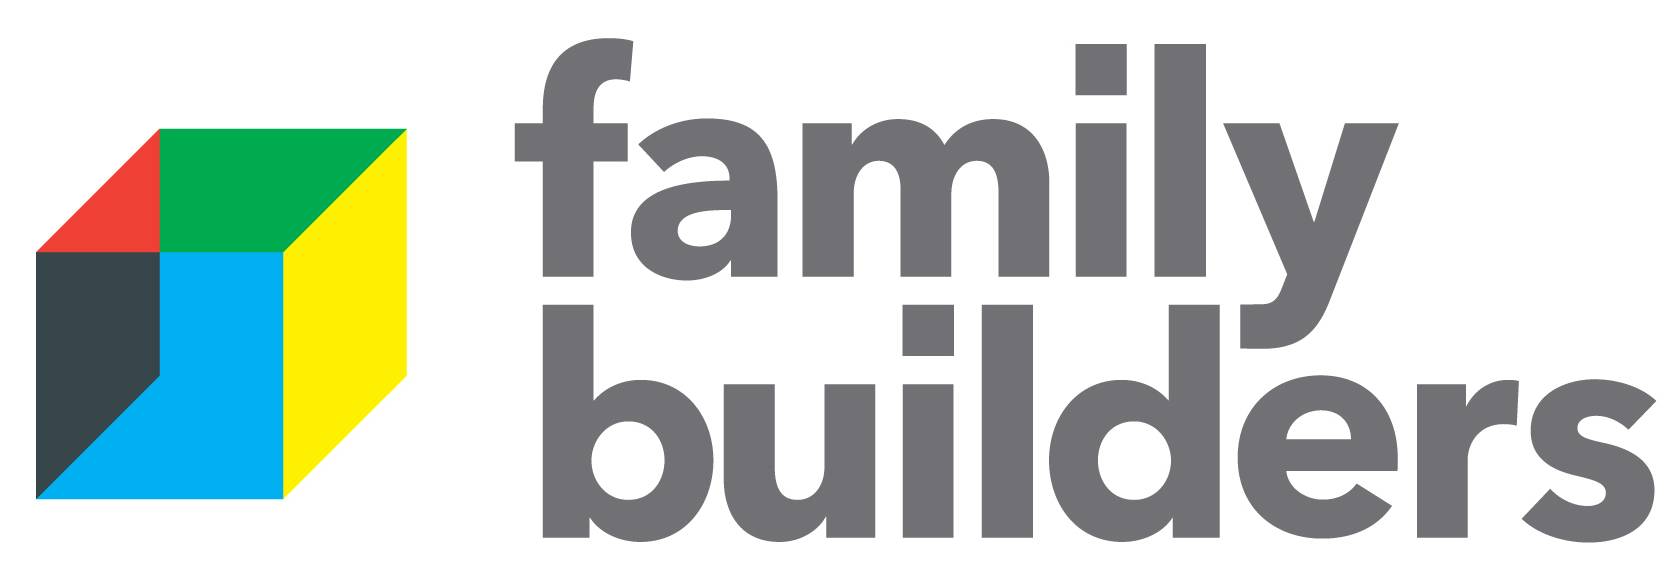 Family Builders OKC is a client of Chris Zervas, an employee engagement and retention keynote speaker in Oklahoma